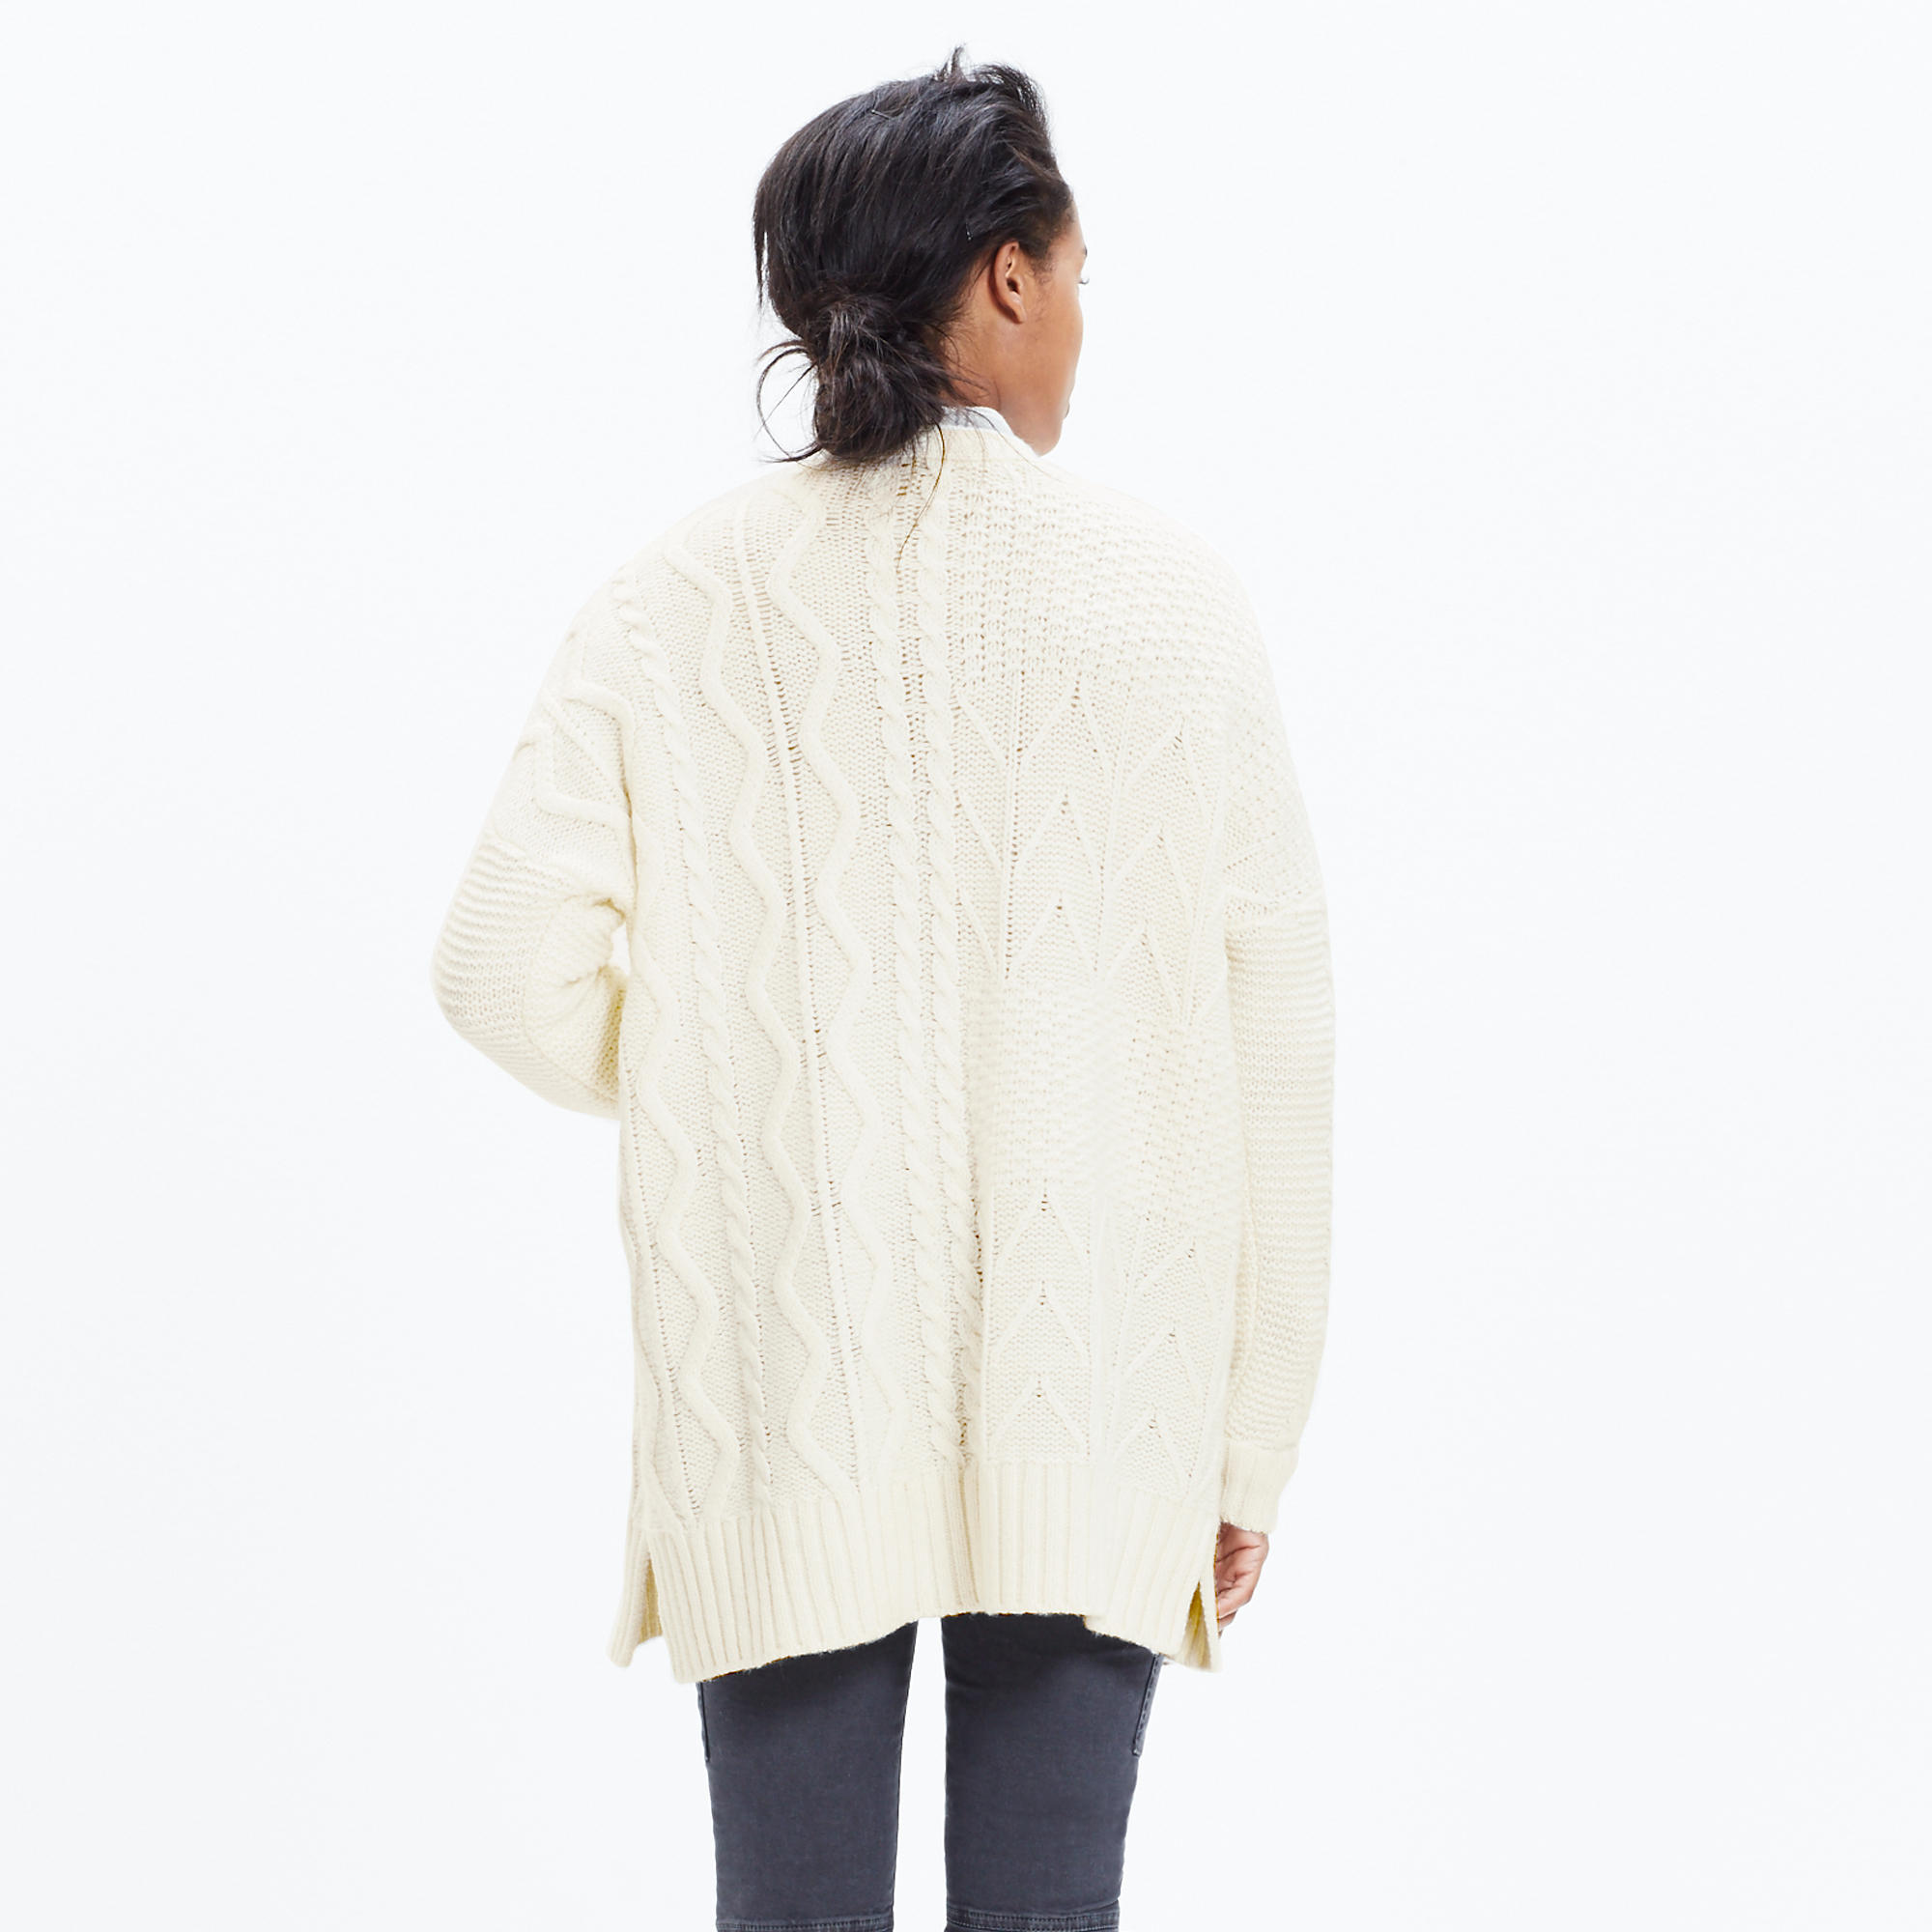 Panelstitch Cardigan Sweater : shopmadewell cardigans & sweater ...